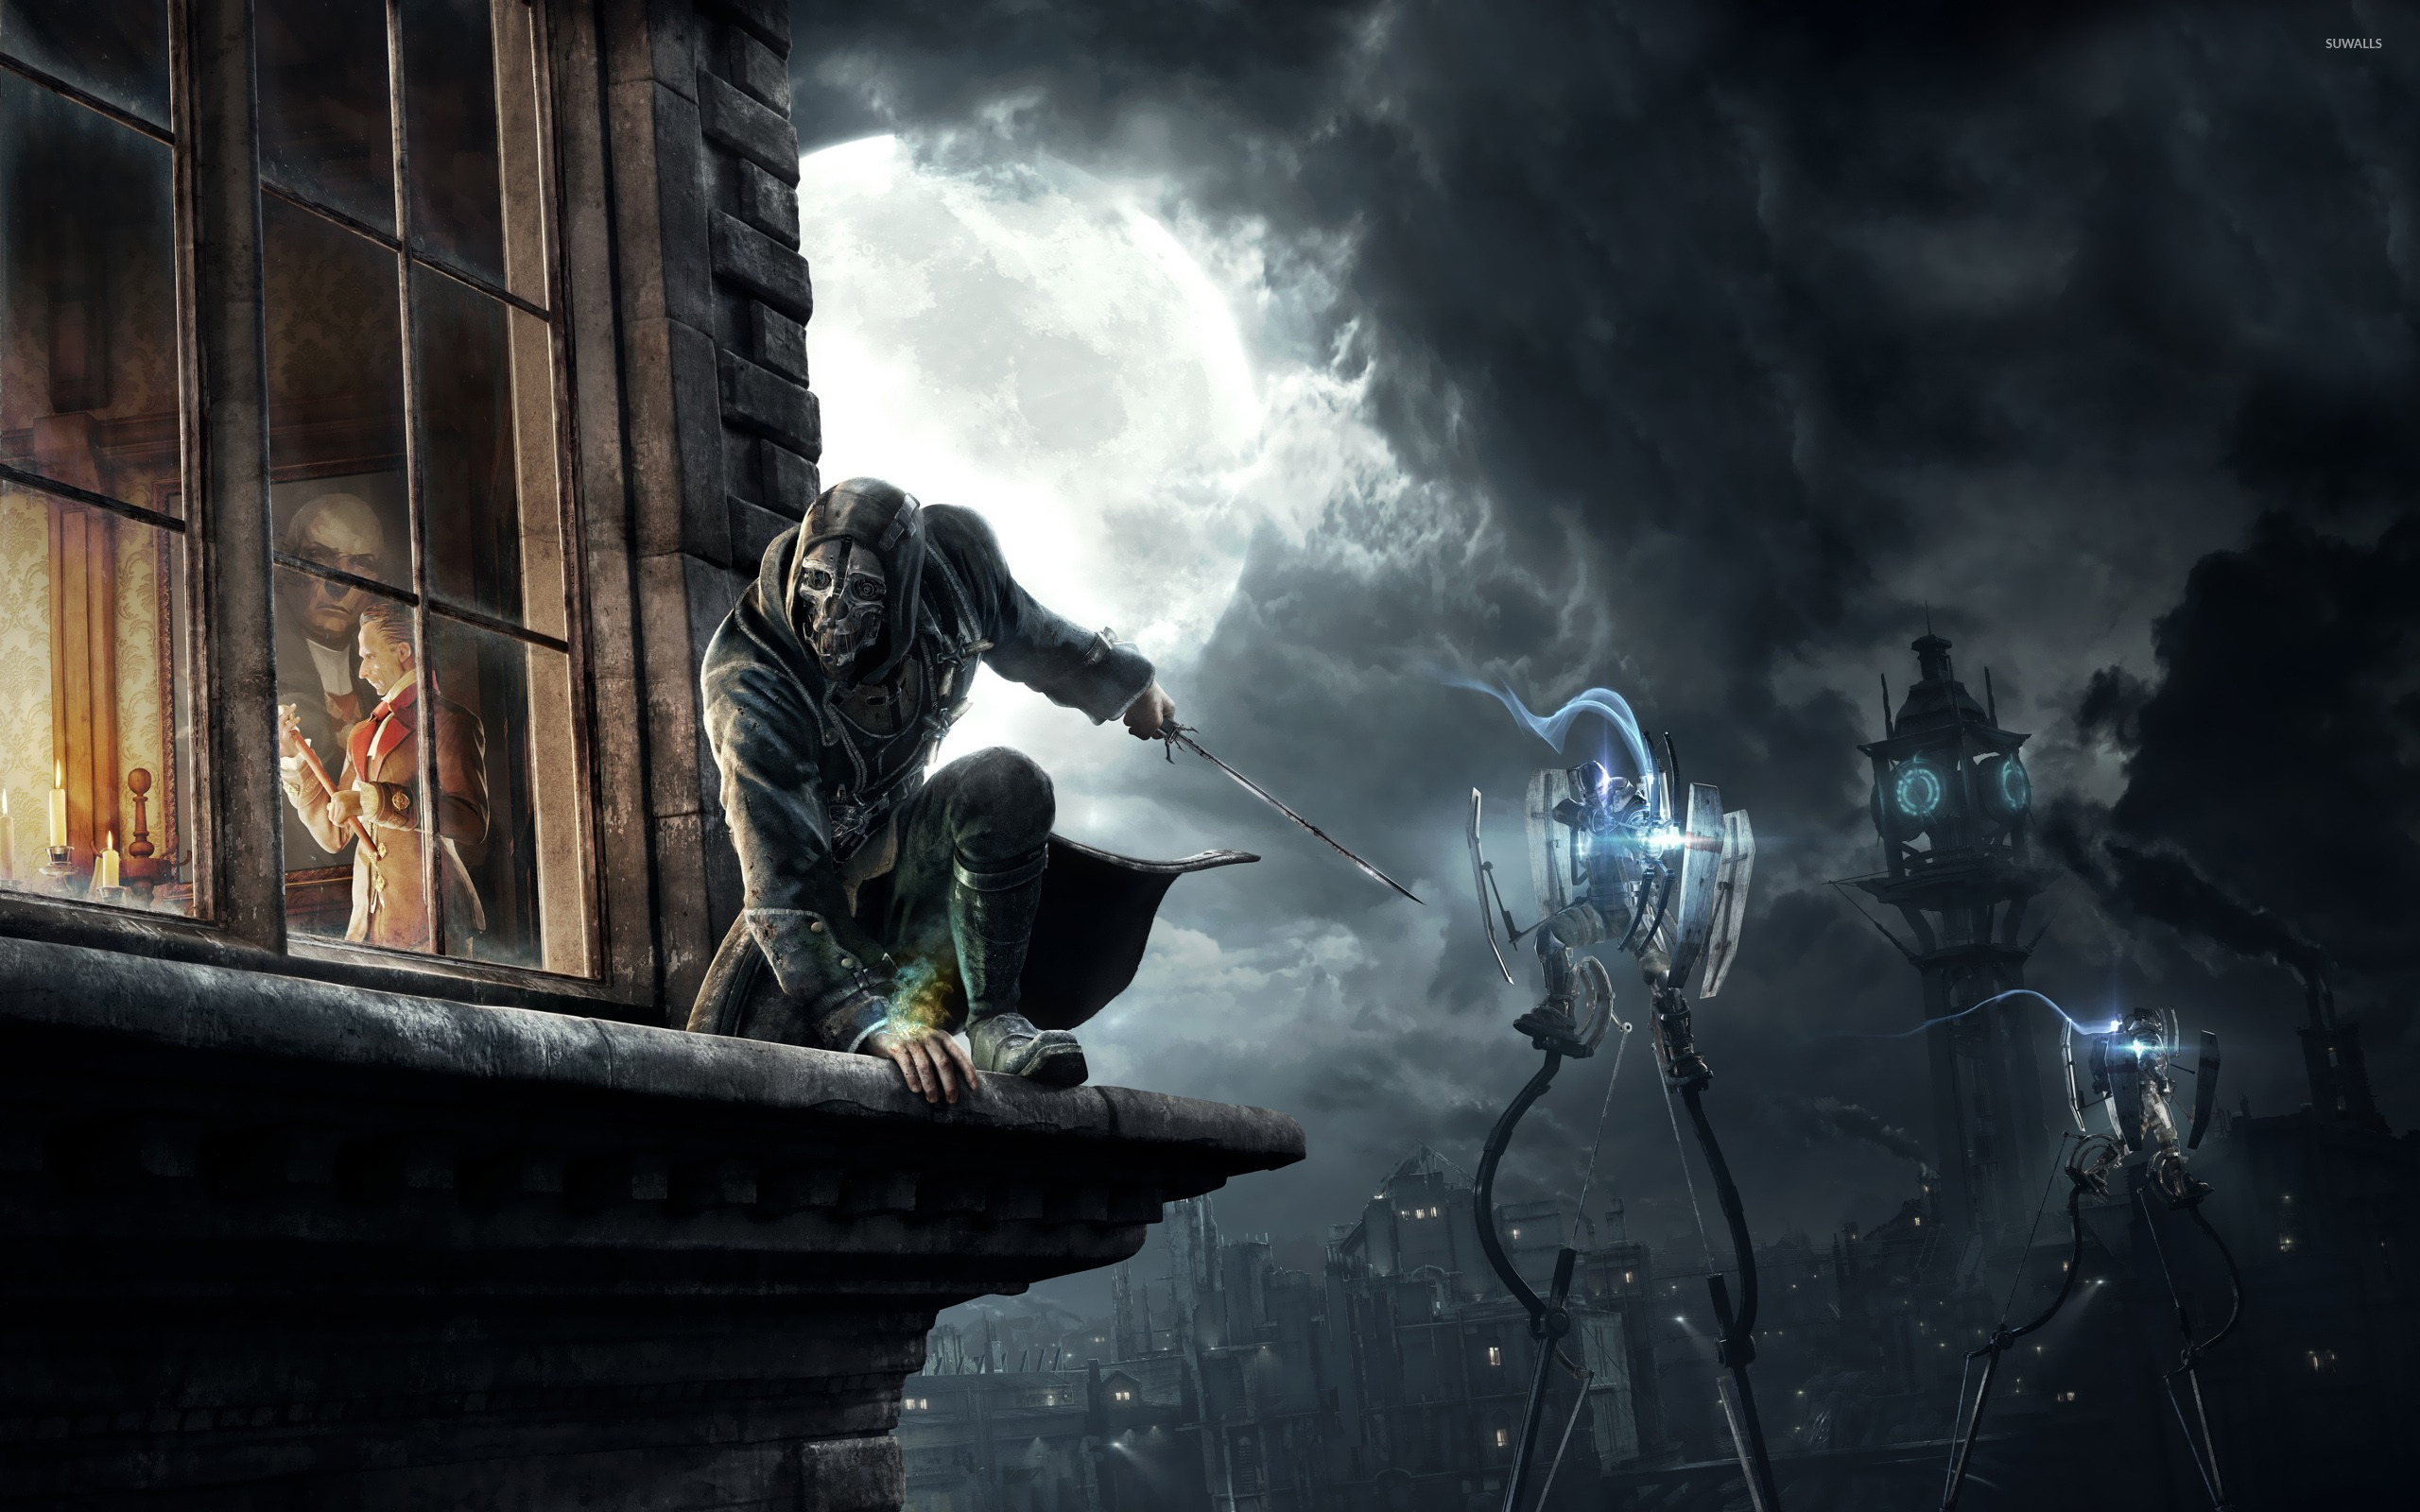 Dishonored Fan Art Corvo Video Games Wallpapers Hd: Dishonored [3] Wallpaper